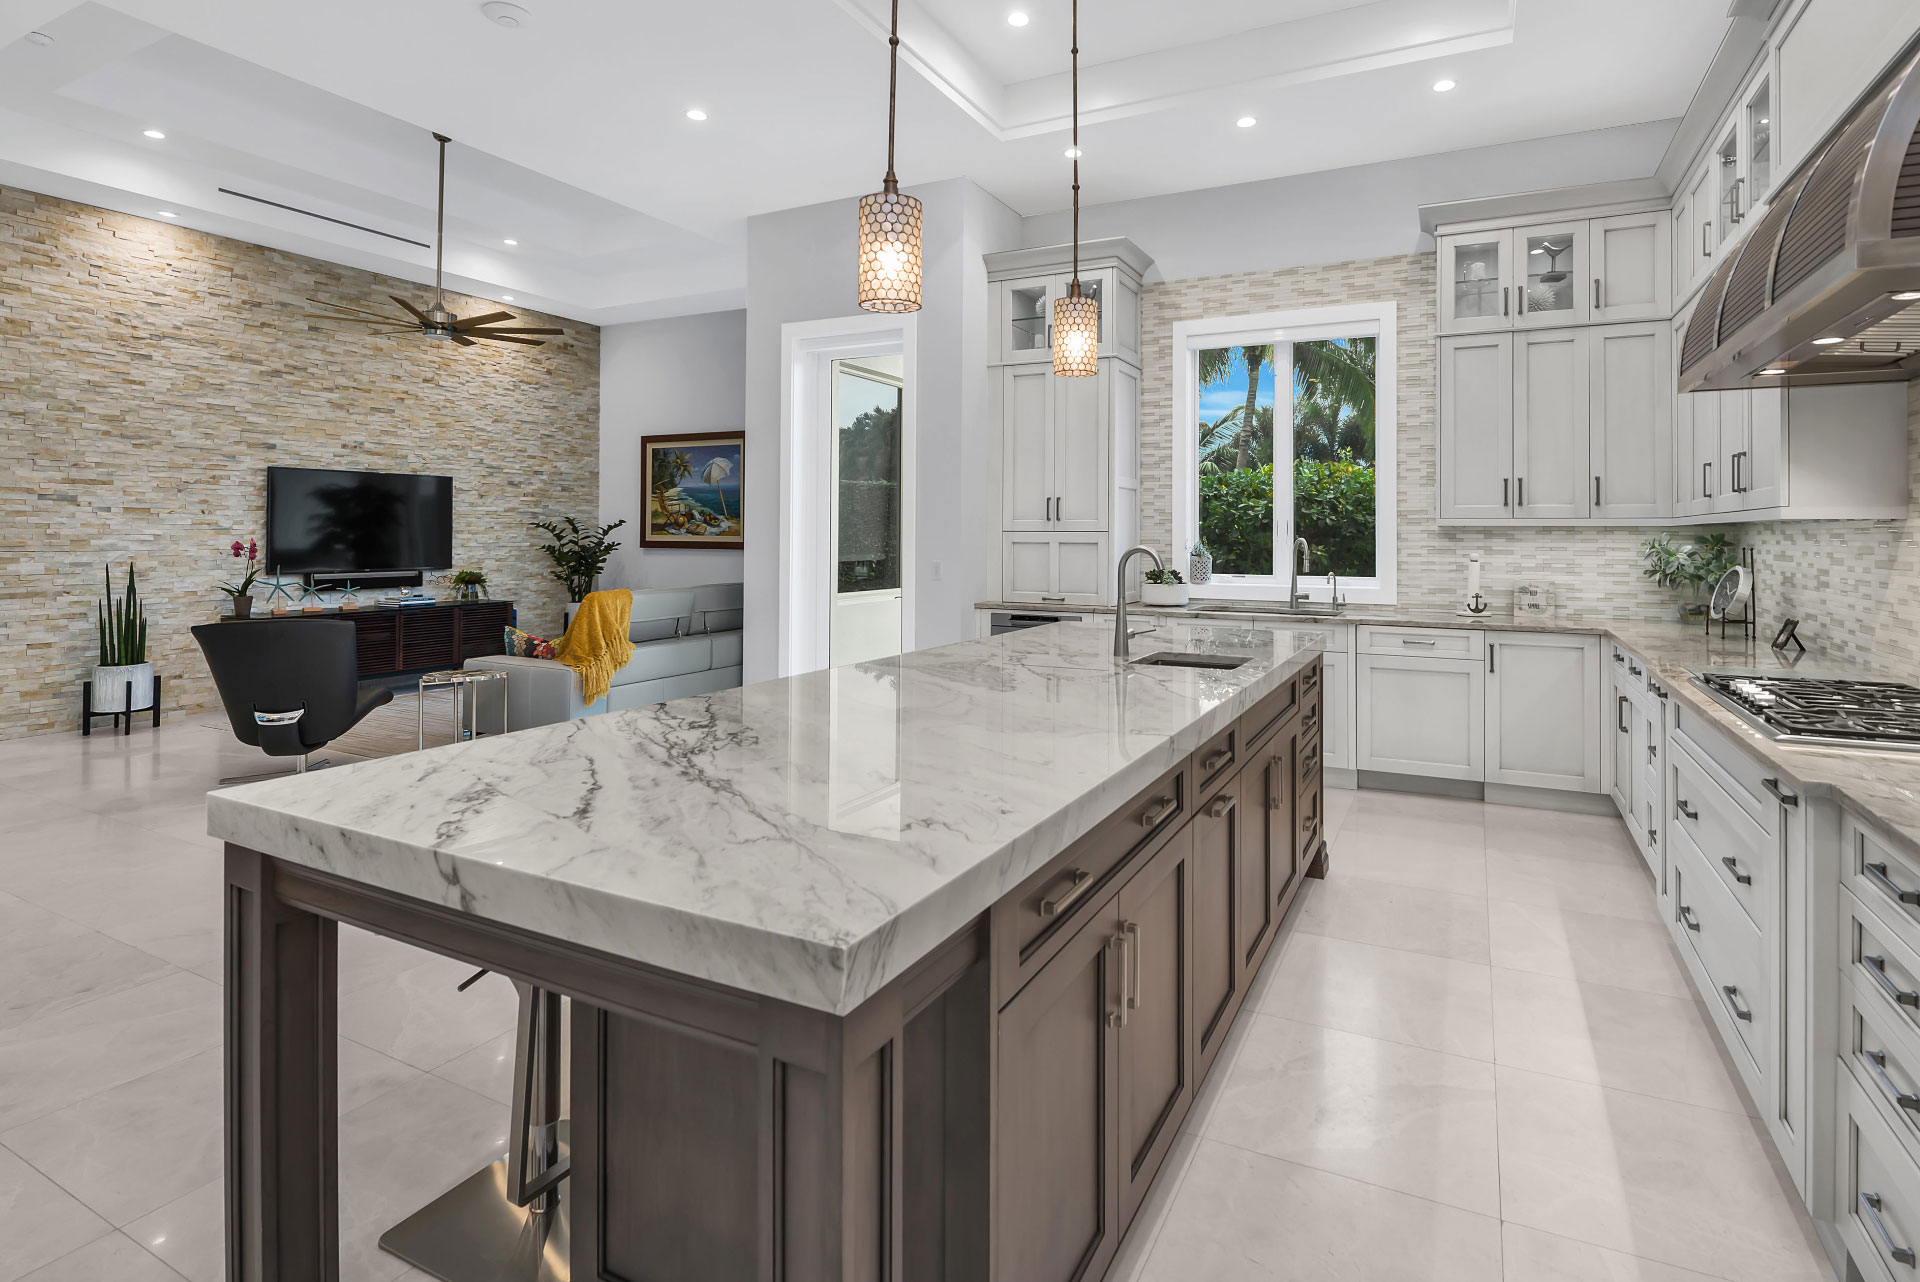 Lykos Group kitchen with a beautiful island overlooking a fireplace